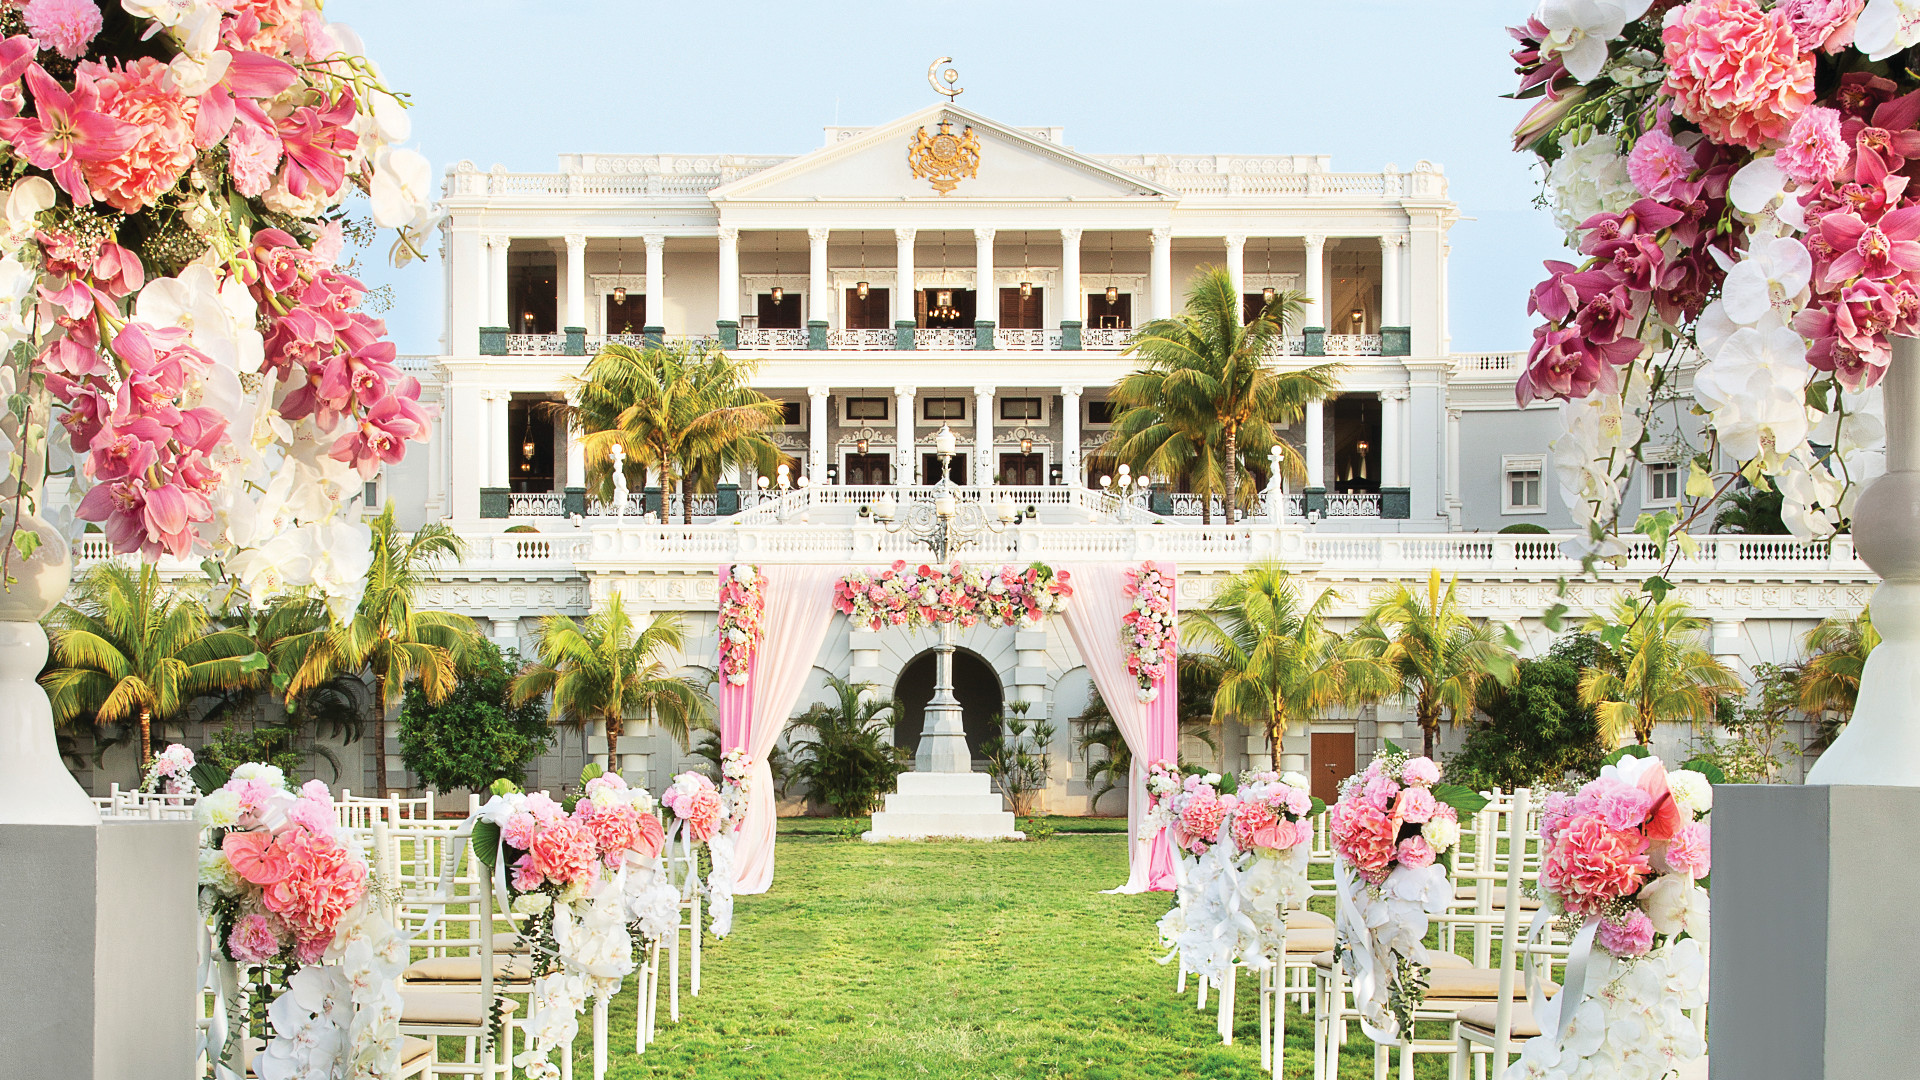 A wedding on the lawns at Taj Falaknuma Palace, Hyderabad